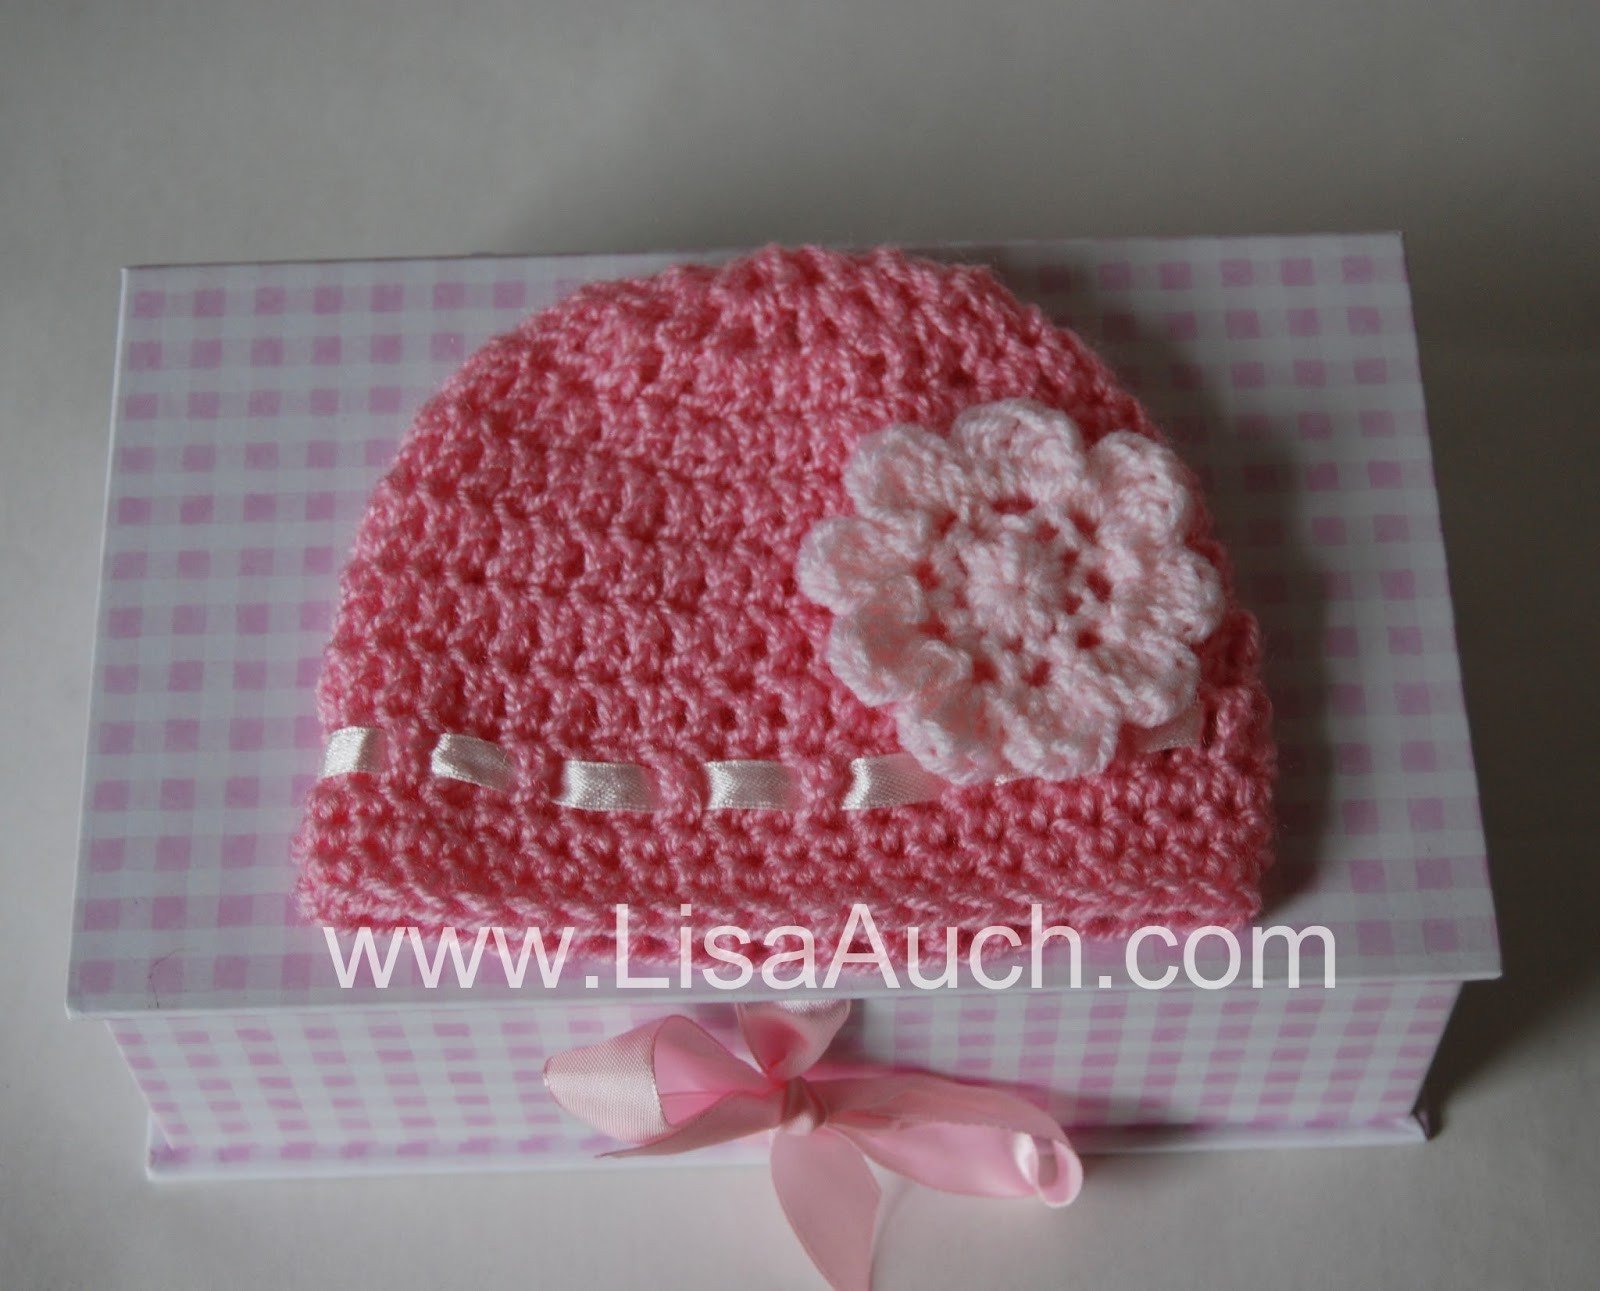 Free Crochet Patterns For Baby Girl Beanie : Crochet Toddler Patterns ? Crochet Club